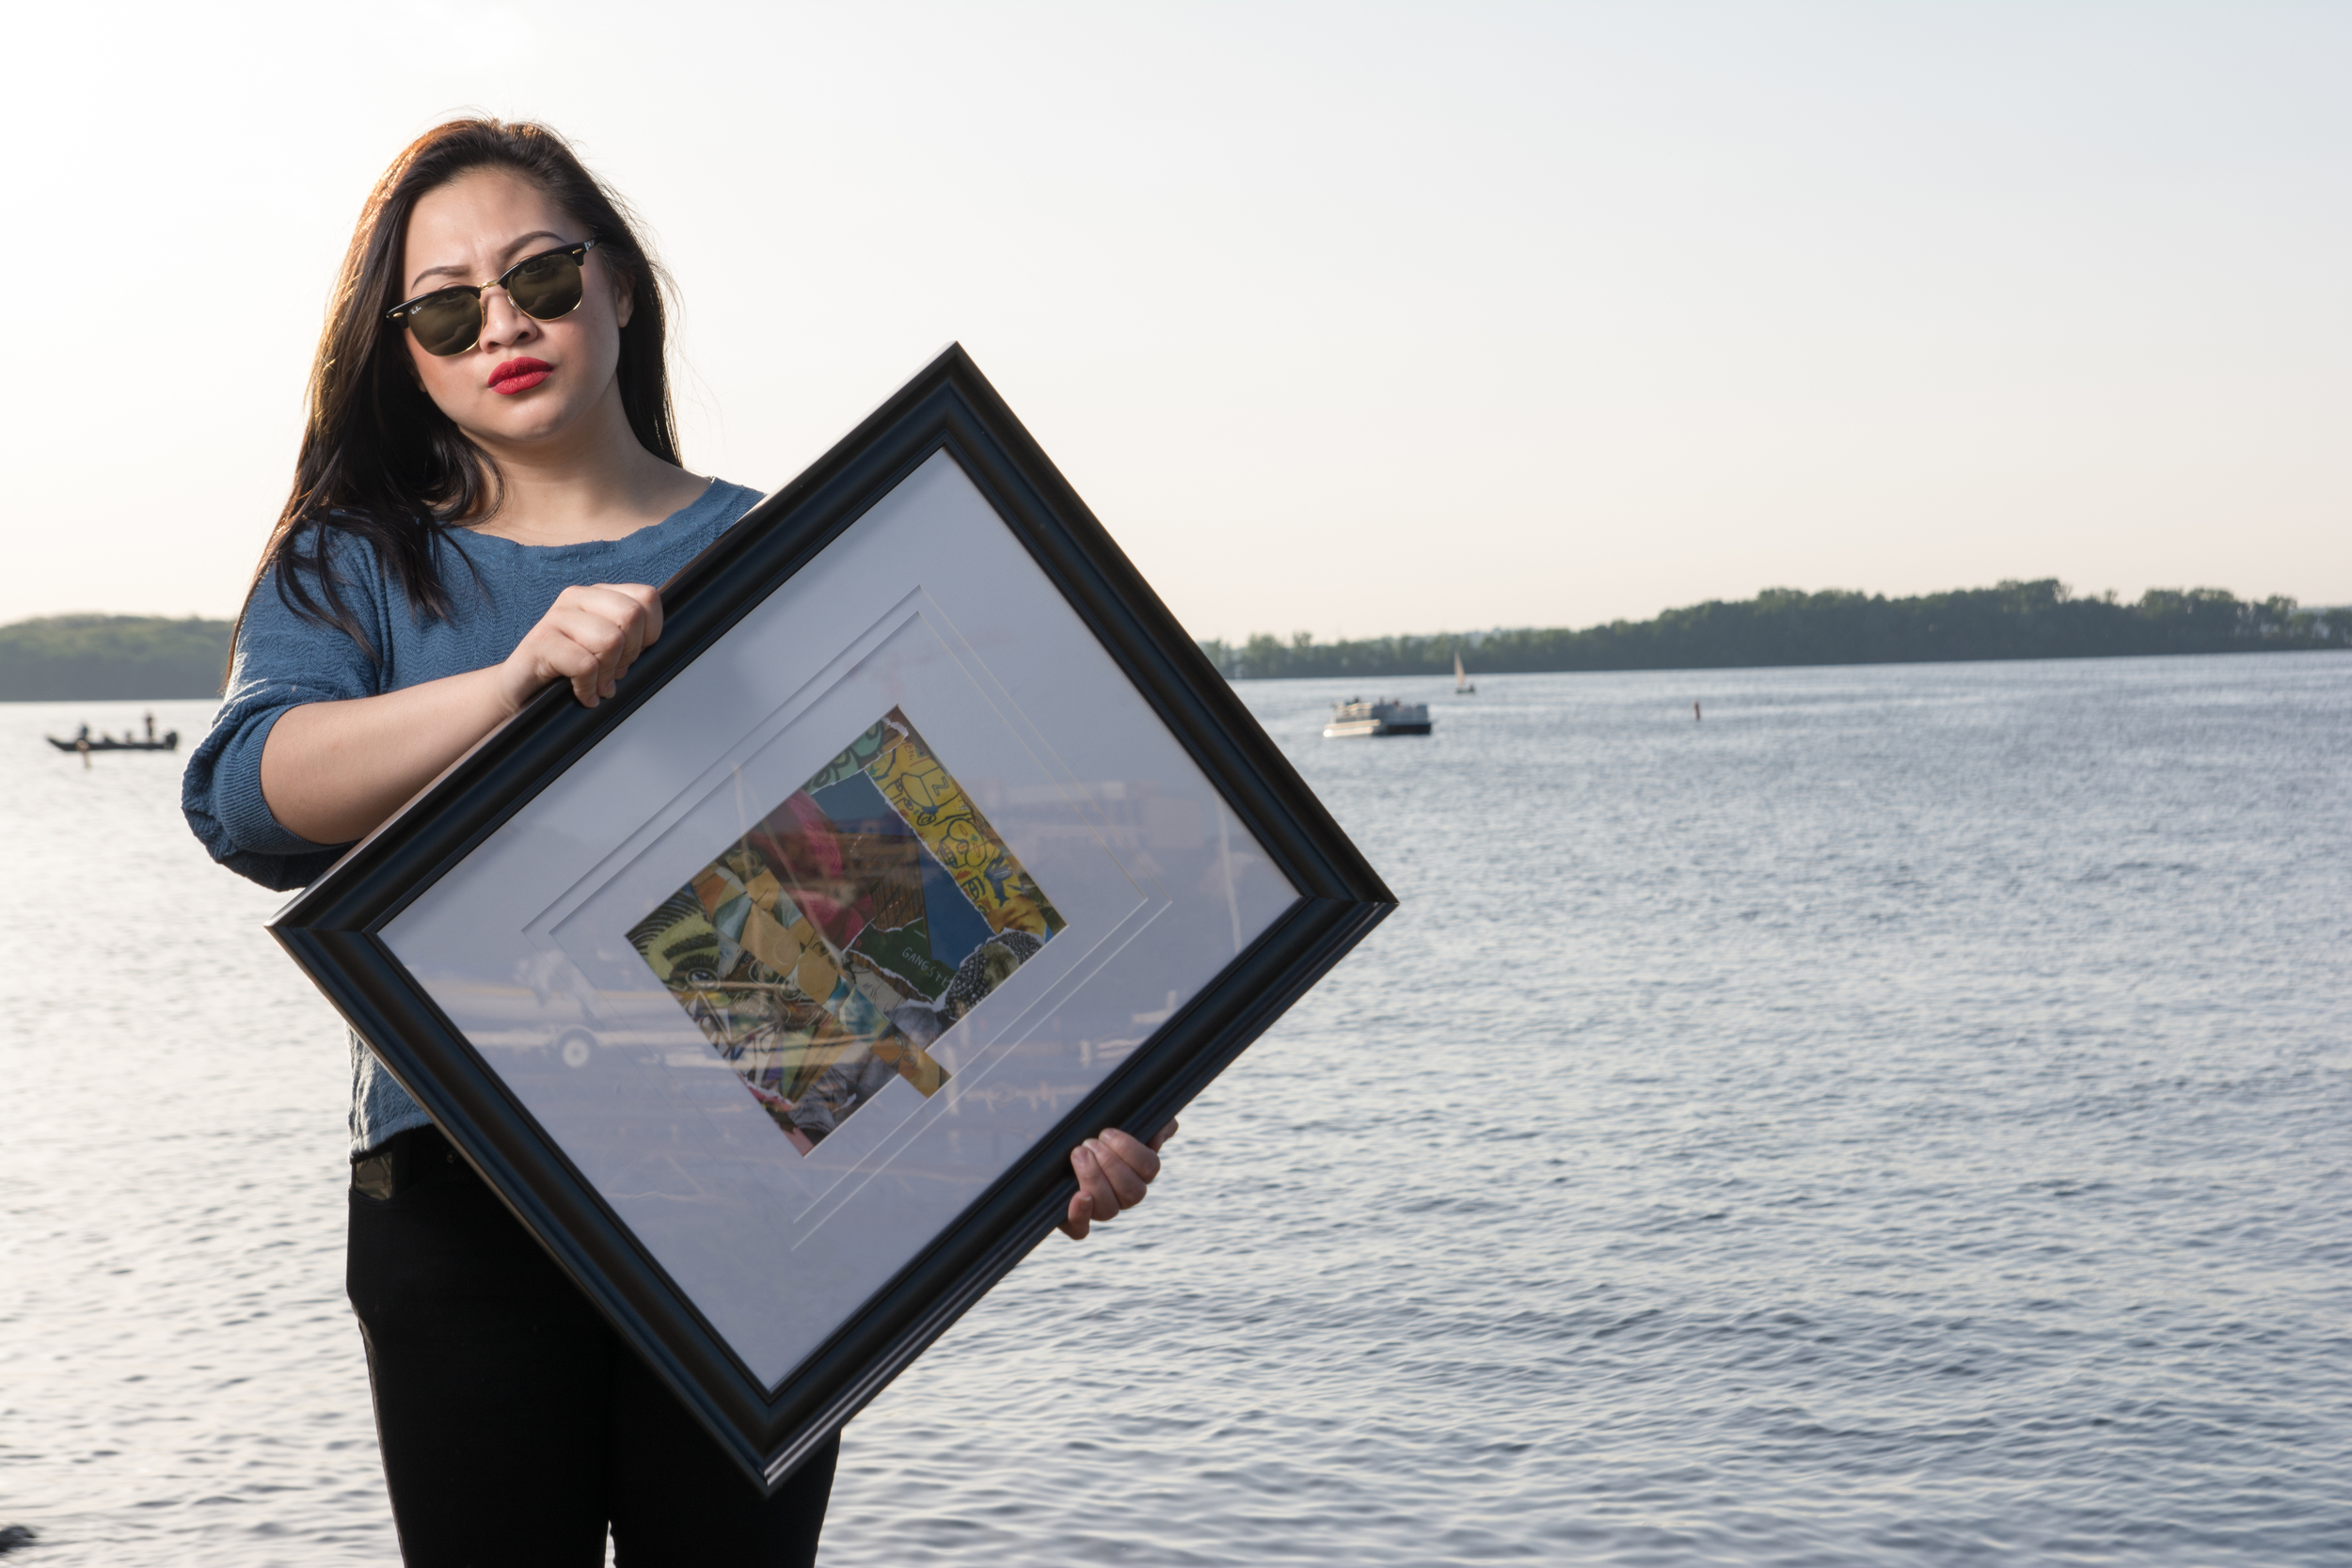 """UW Madison First Wave Scholar,   GretchenCarvajal , shows off her artistic representation of """"Picasso Baby"""" by Jay Z. Photo by: Bradlee Berrtam and Michael Ford"""